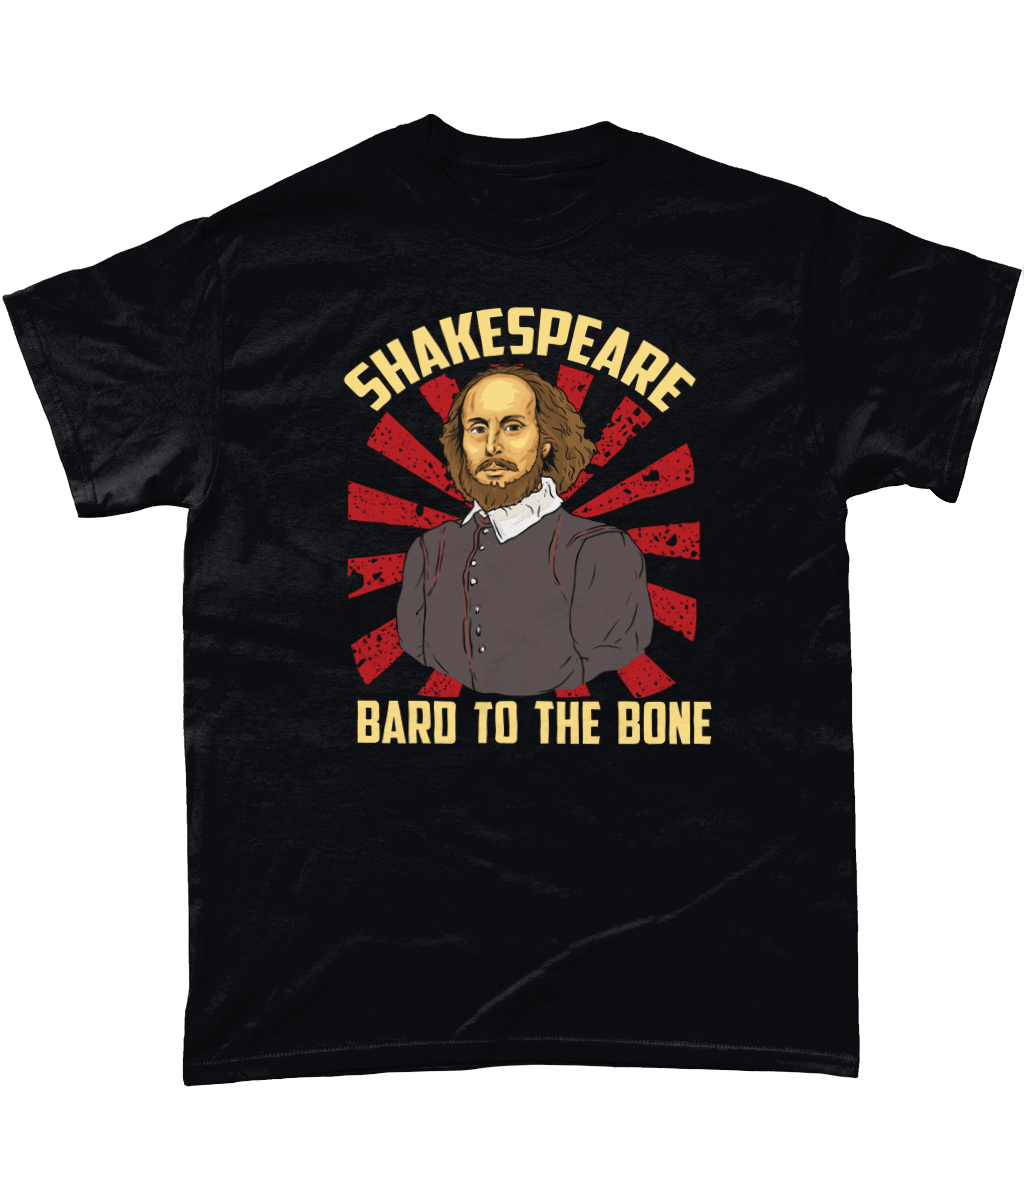 Shakespeare tshirt Bard to the bone